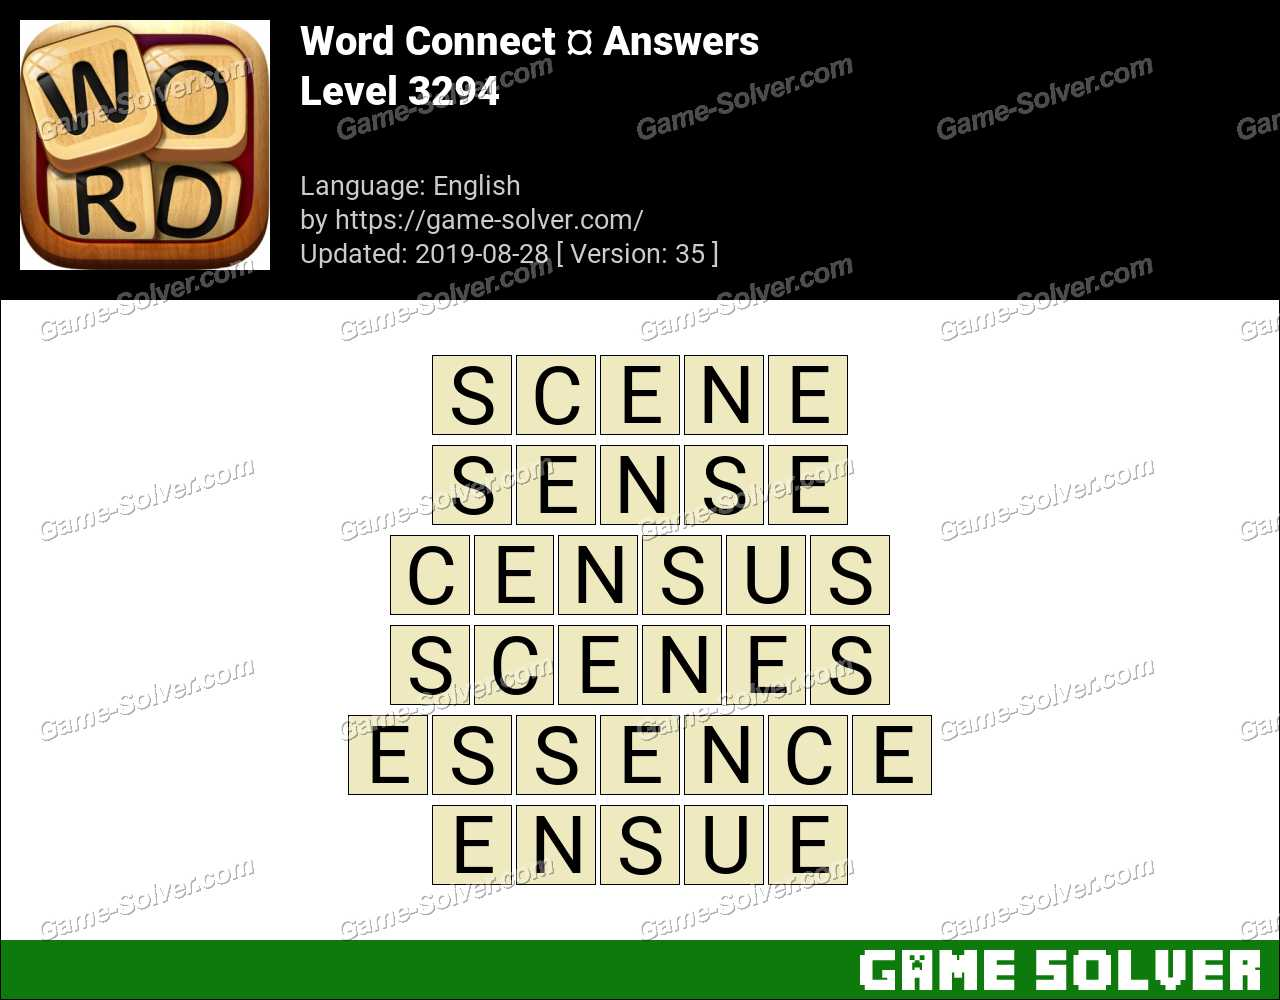 Word Connect Level 3294 Answers